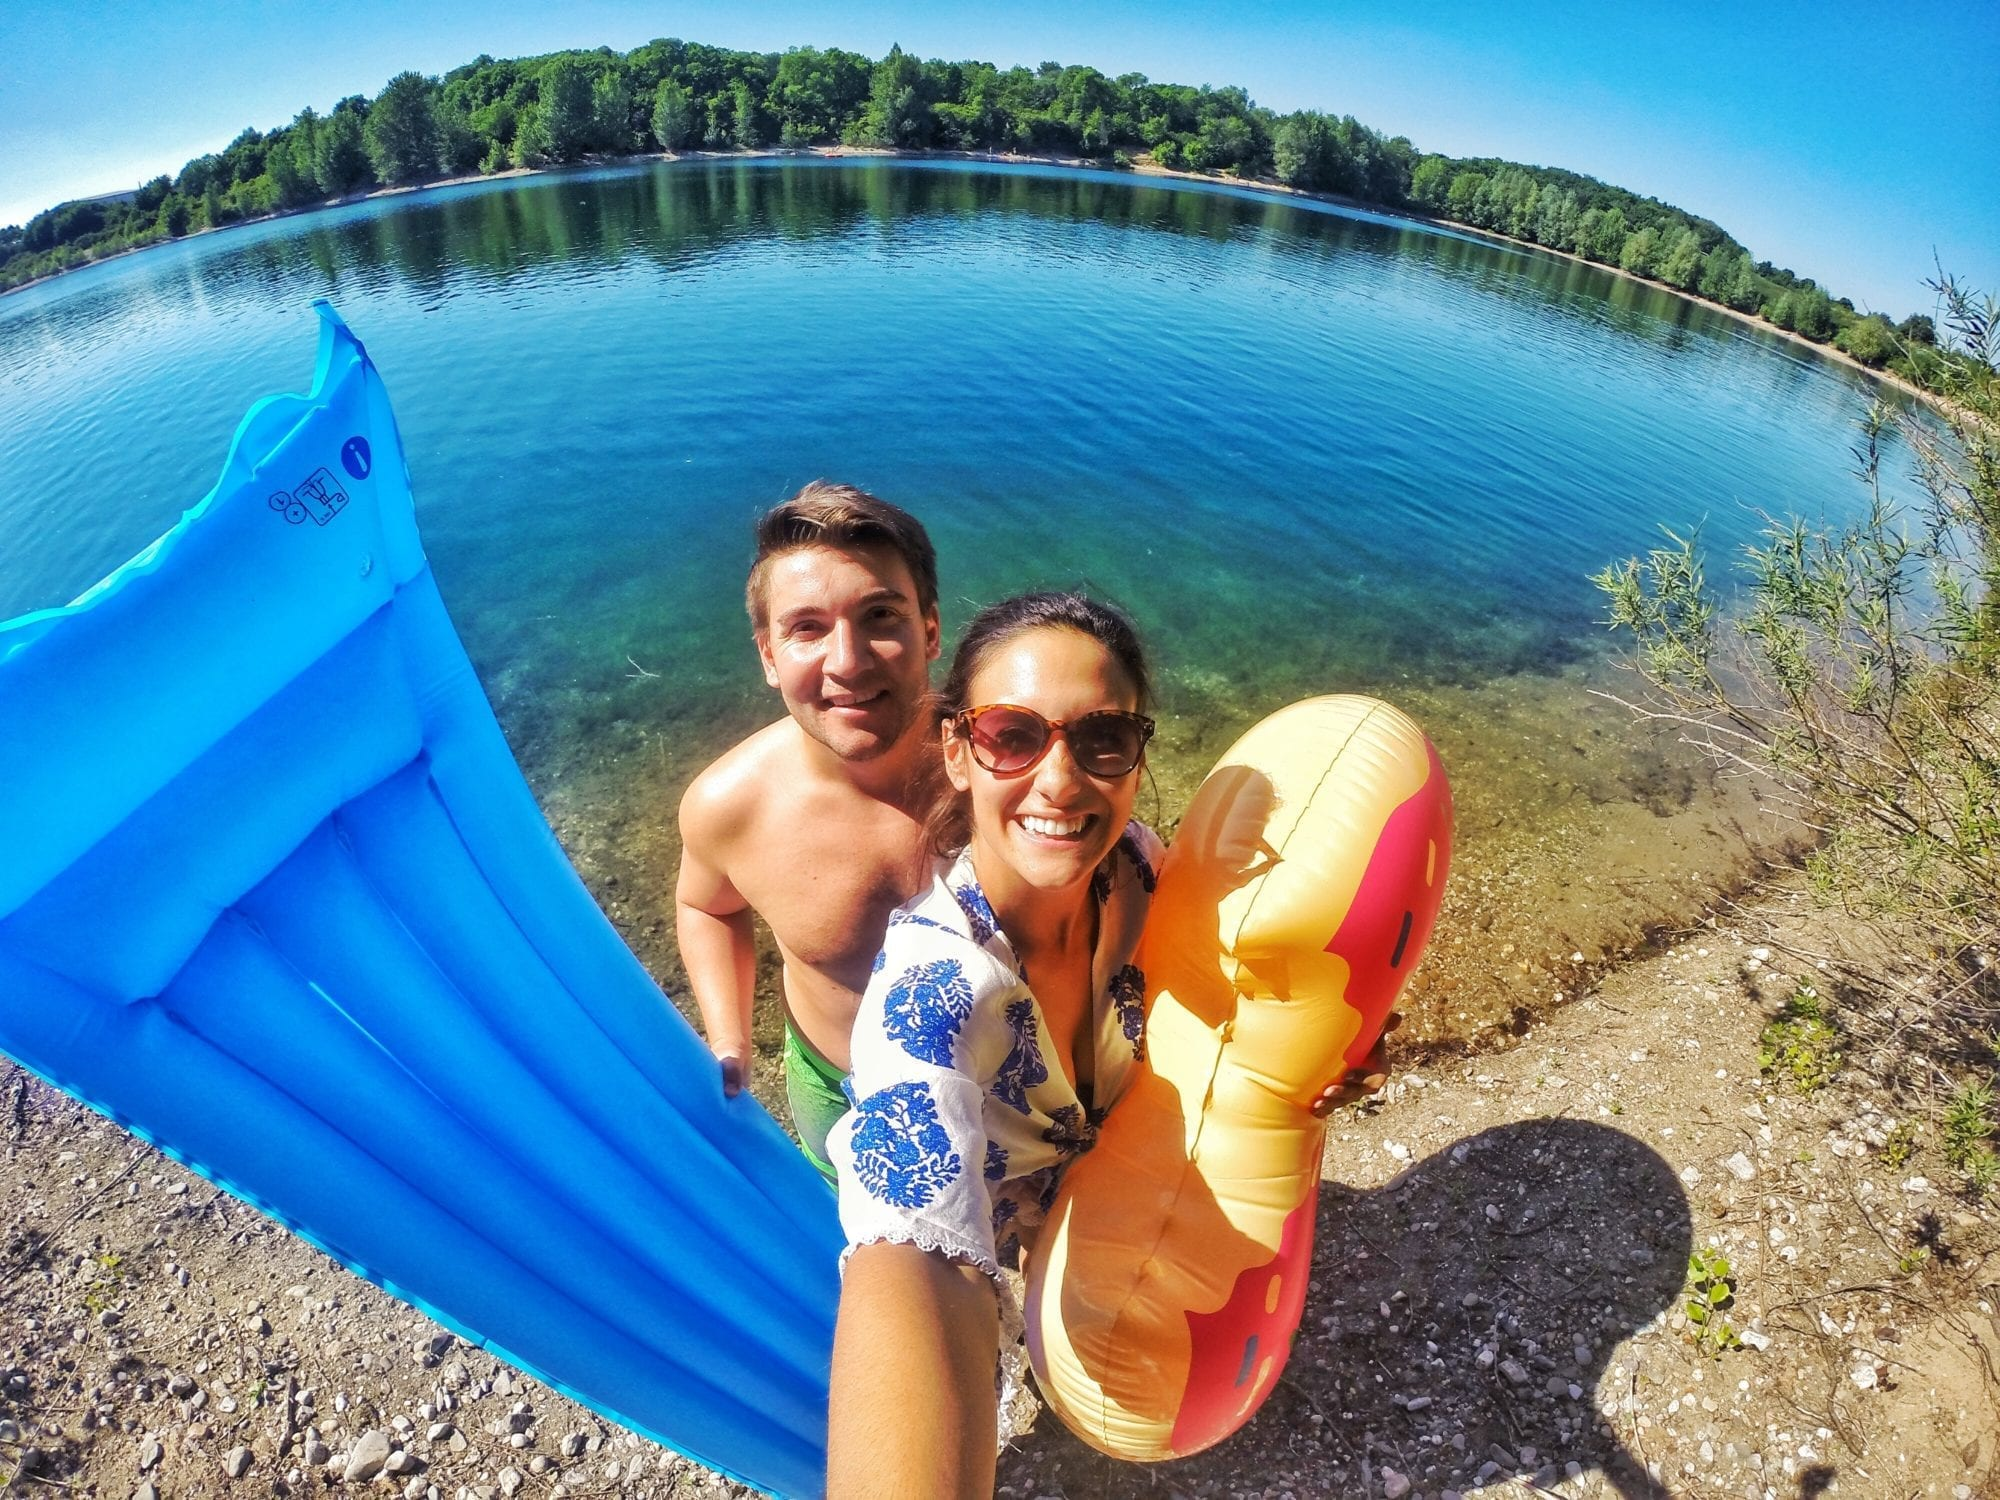 A Guide to Pools, Lakes, and Splash Pads in Düsseldorf